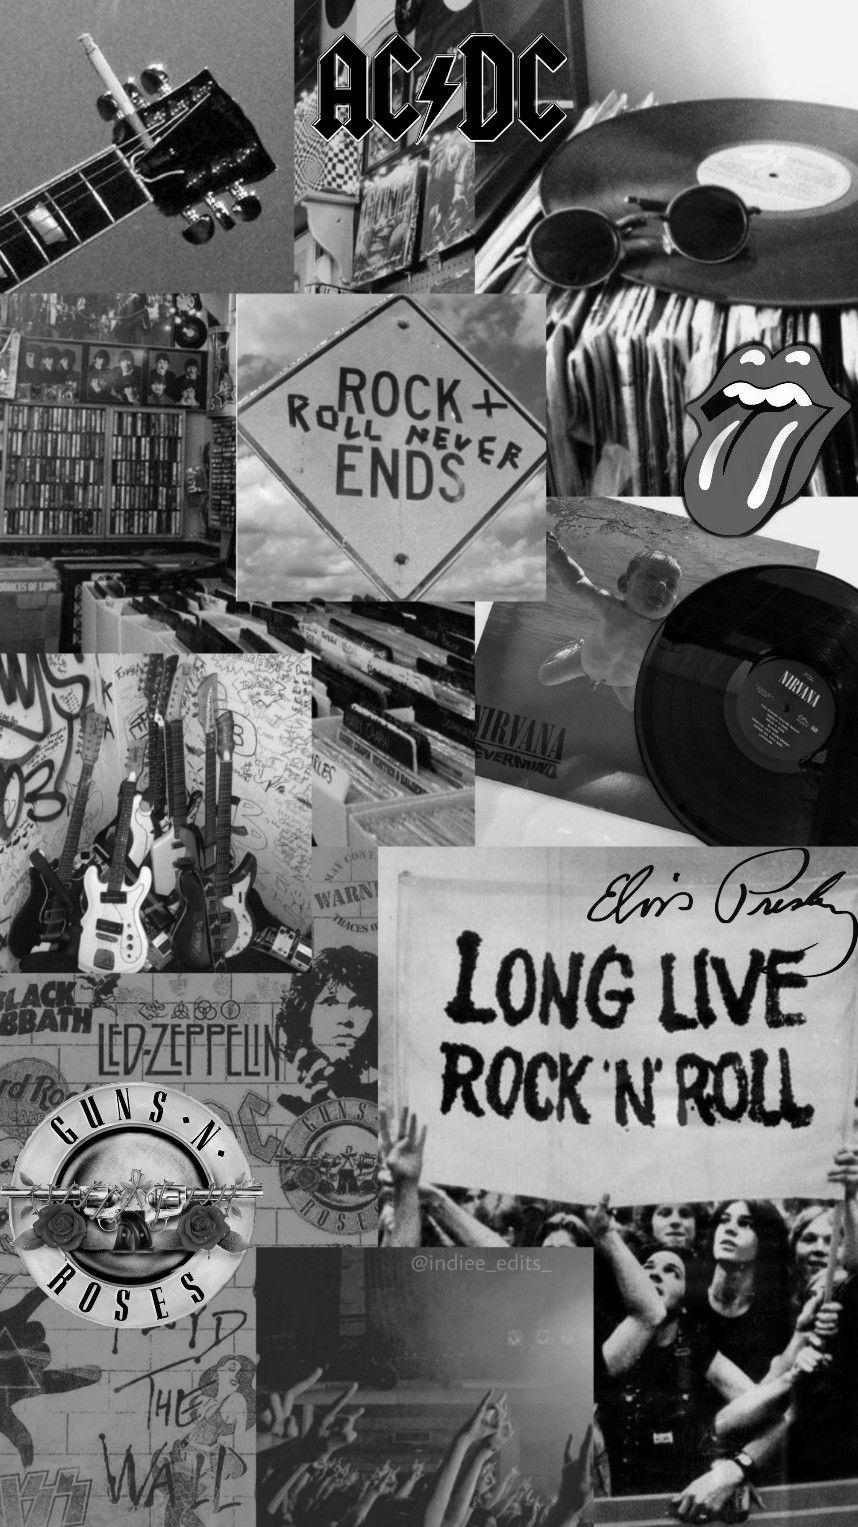 Rock Aesthetic Wallpaper Edgy Wallpaper Iphone Wallpaper Grunge Rock Aesthetic Aesthetic edgy black and white wallpaper